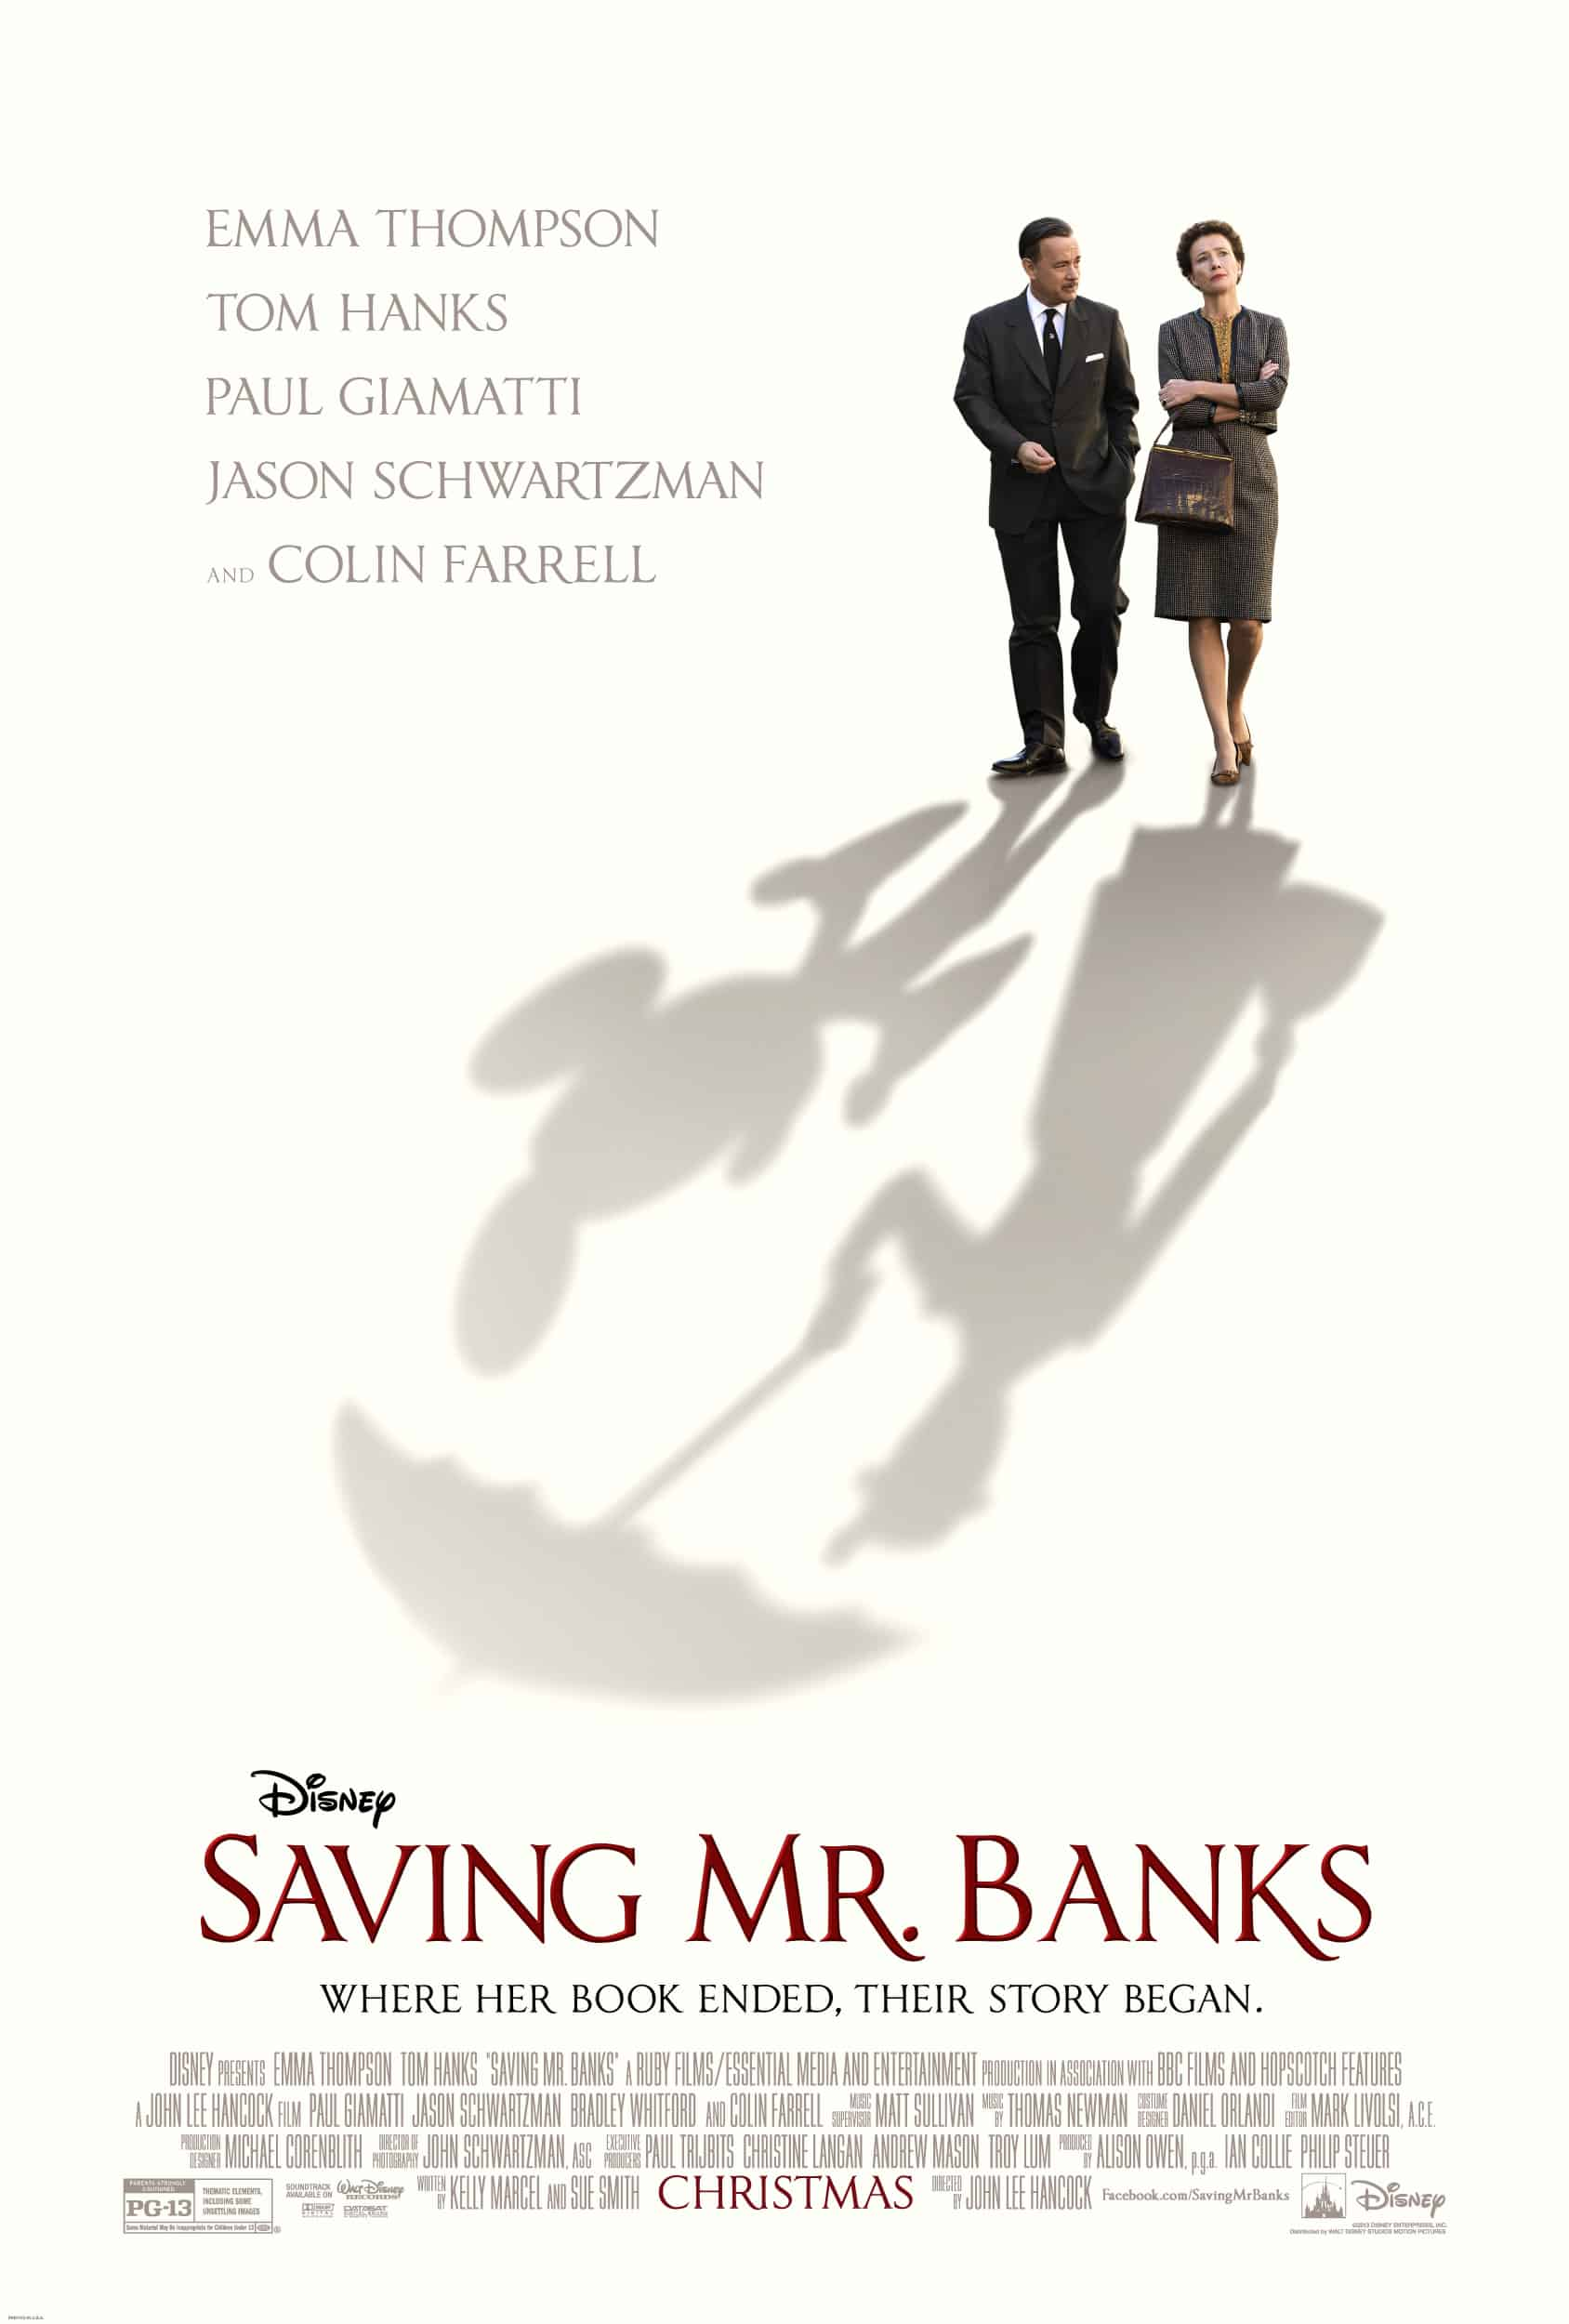 NEW: Official Poster for Saving Mr. Banks